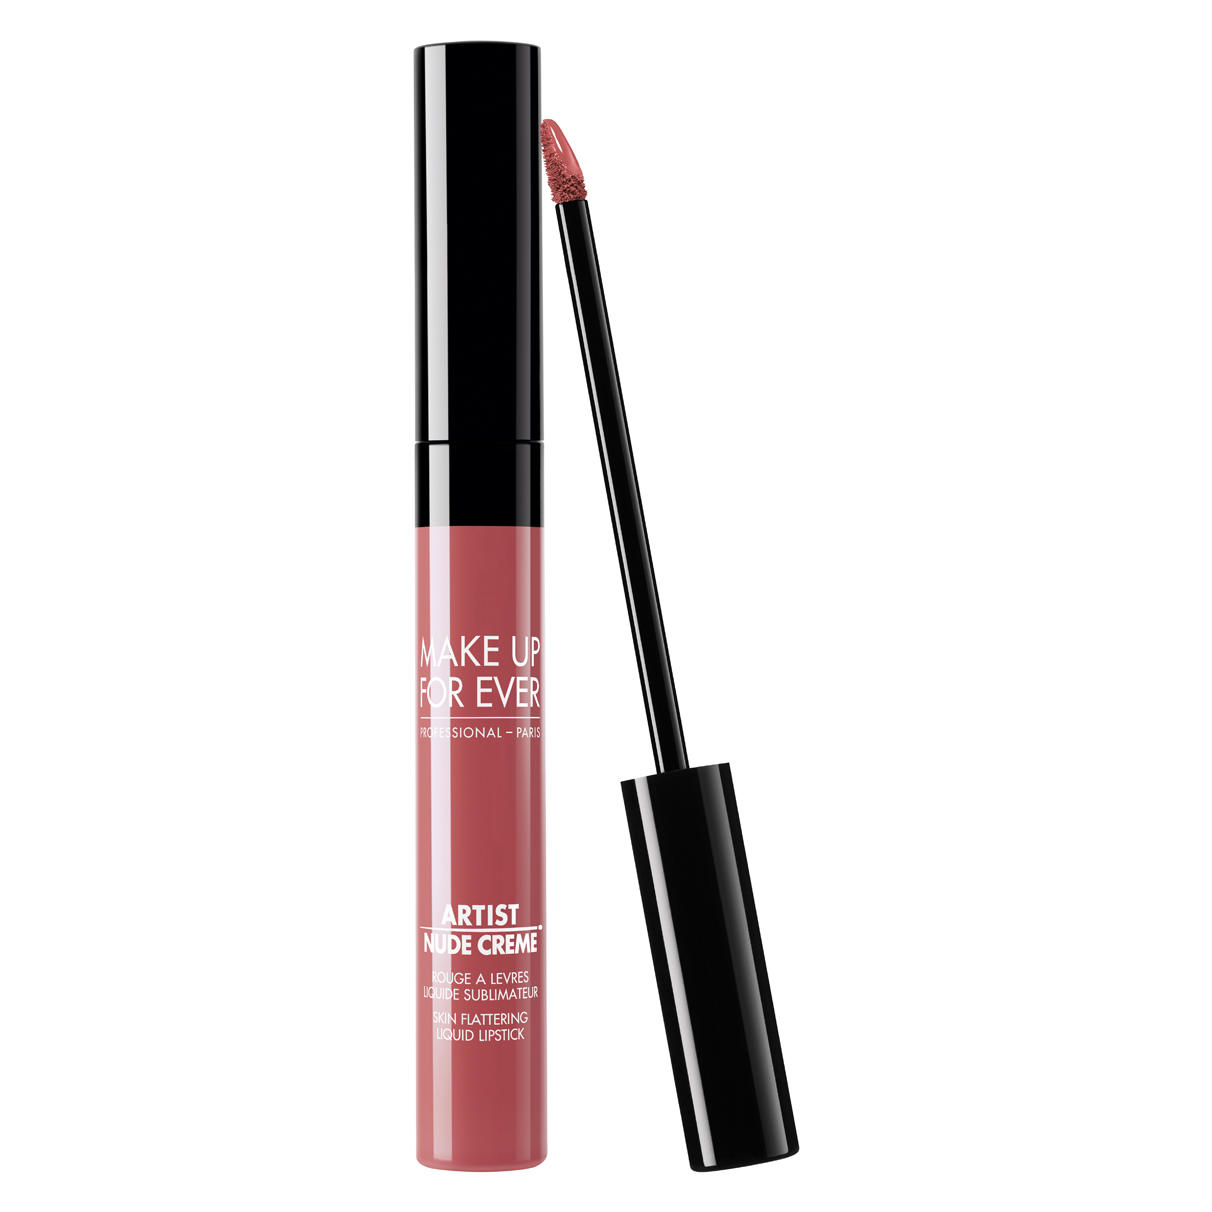 Makeup Forever Artist Nude Creme Liquid Lipstick Touch 08